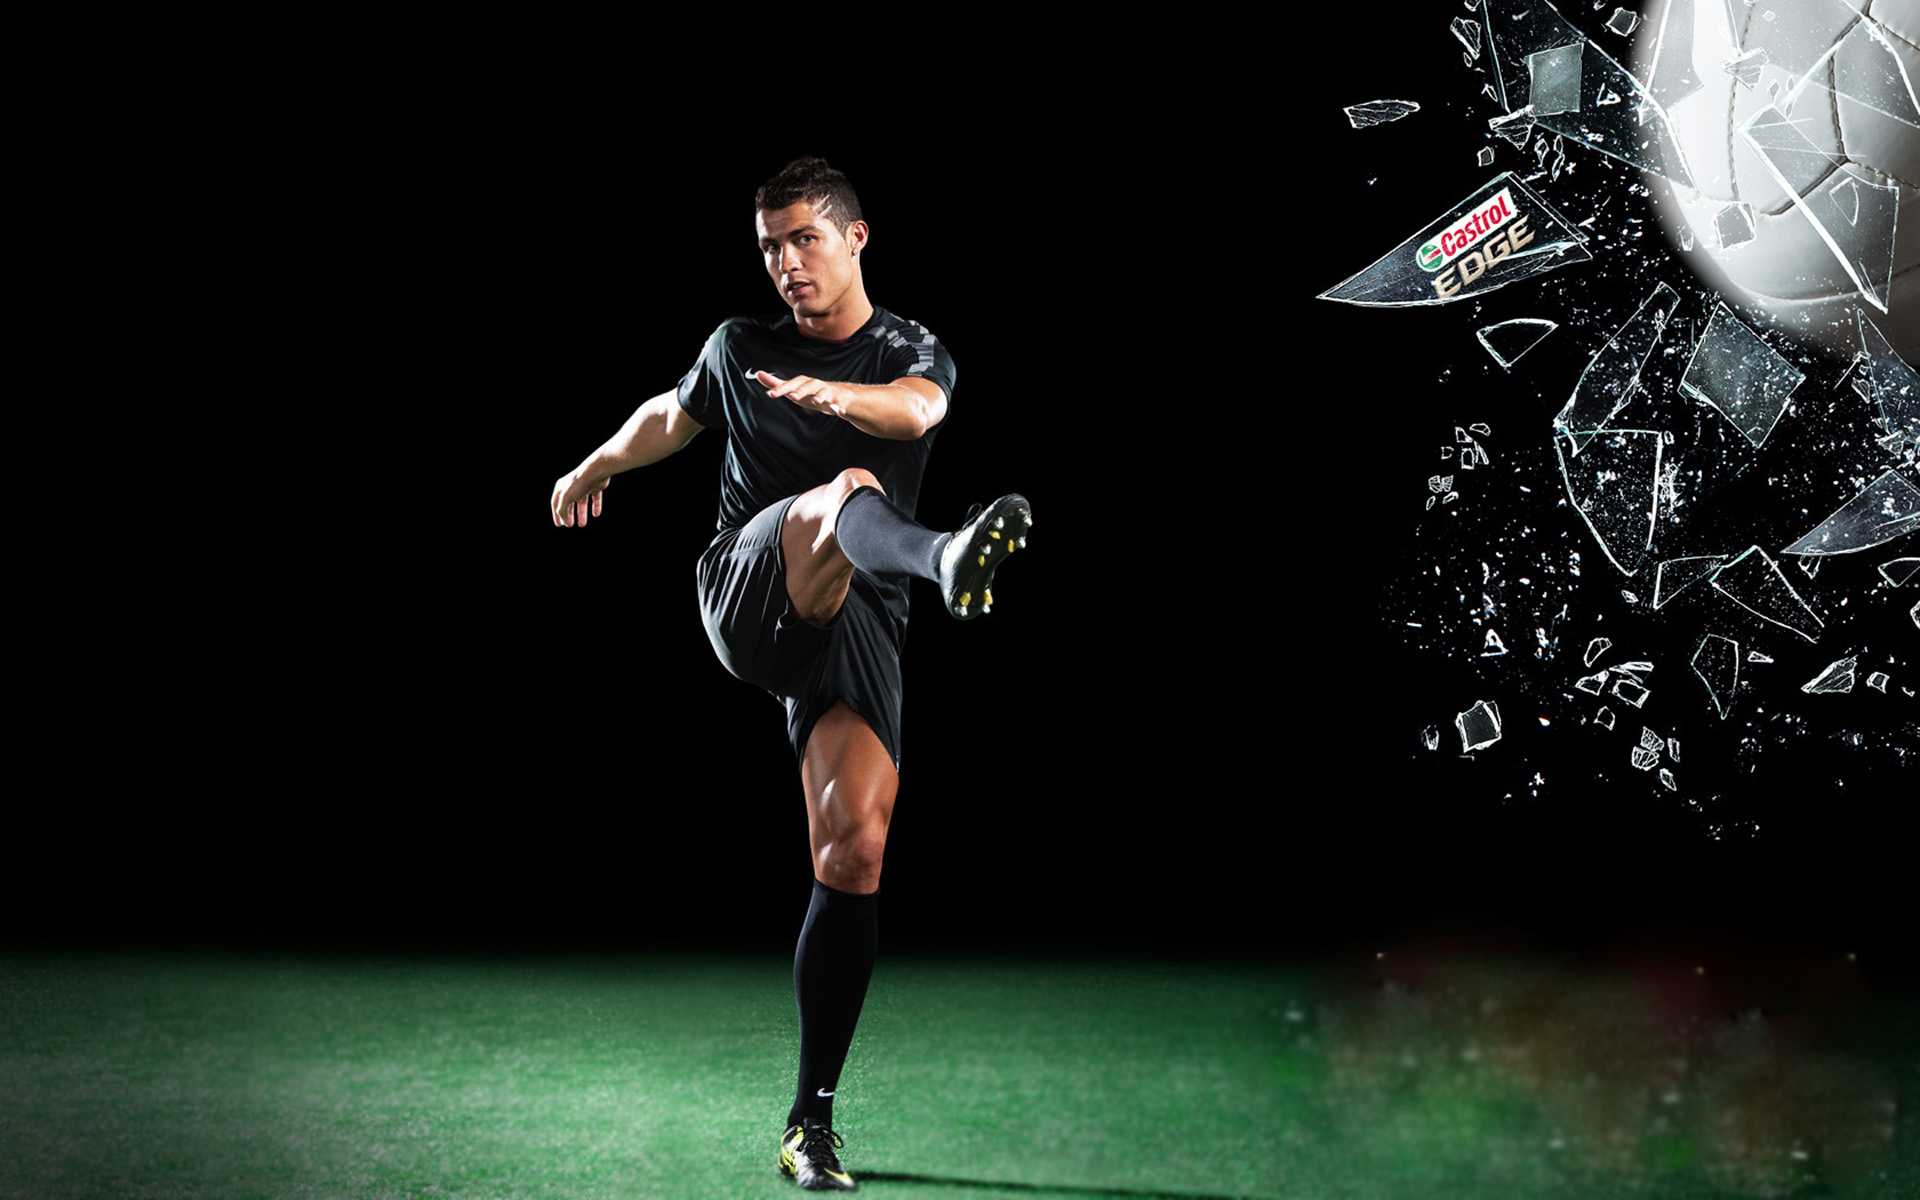 Free Animated 3d Live Wallpaper Fondos De Pantalla De Christiano Ronaldo Wallpapers Hd Gratis